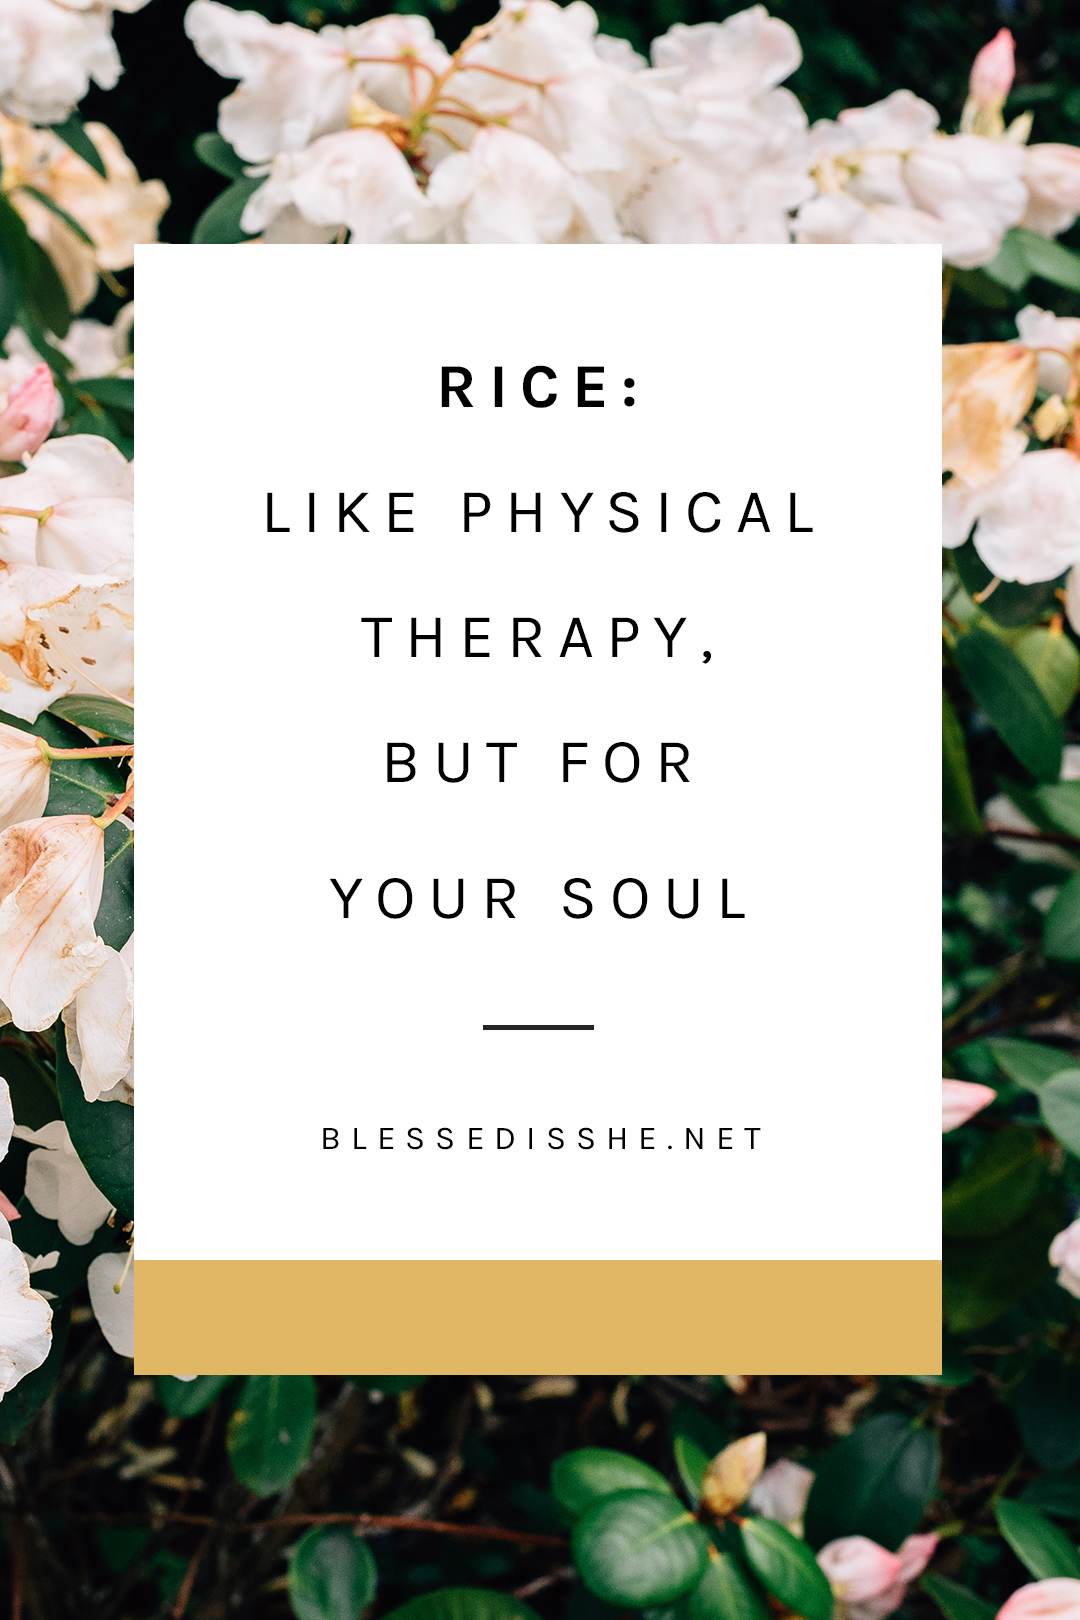 rice physical therapy spiritual therapy